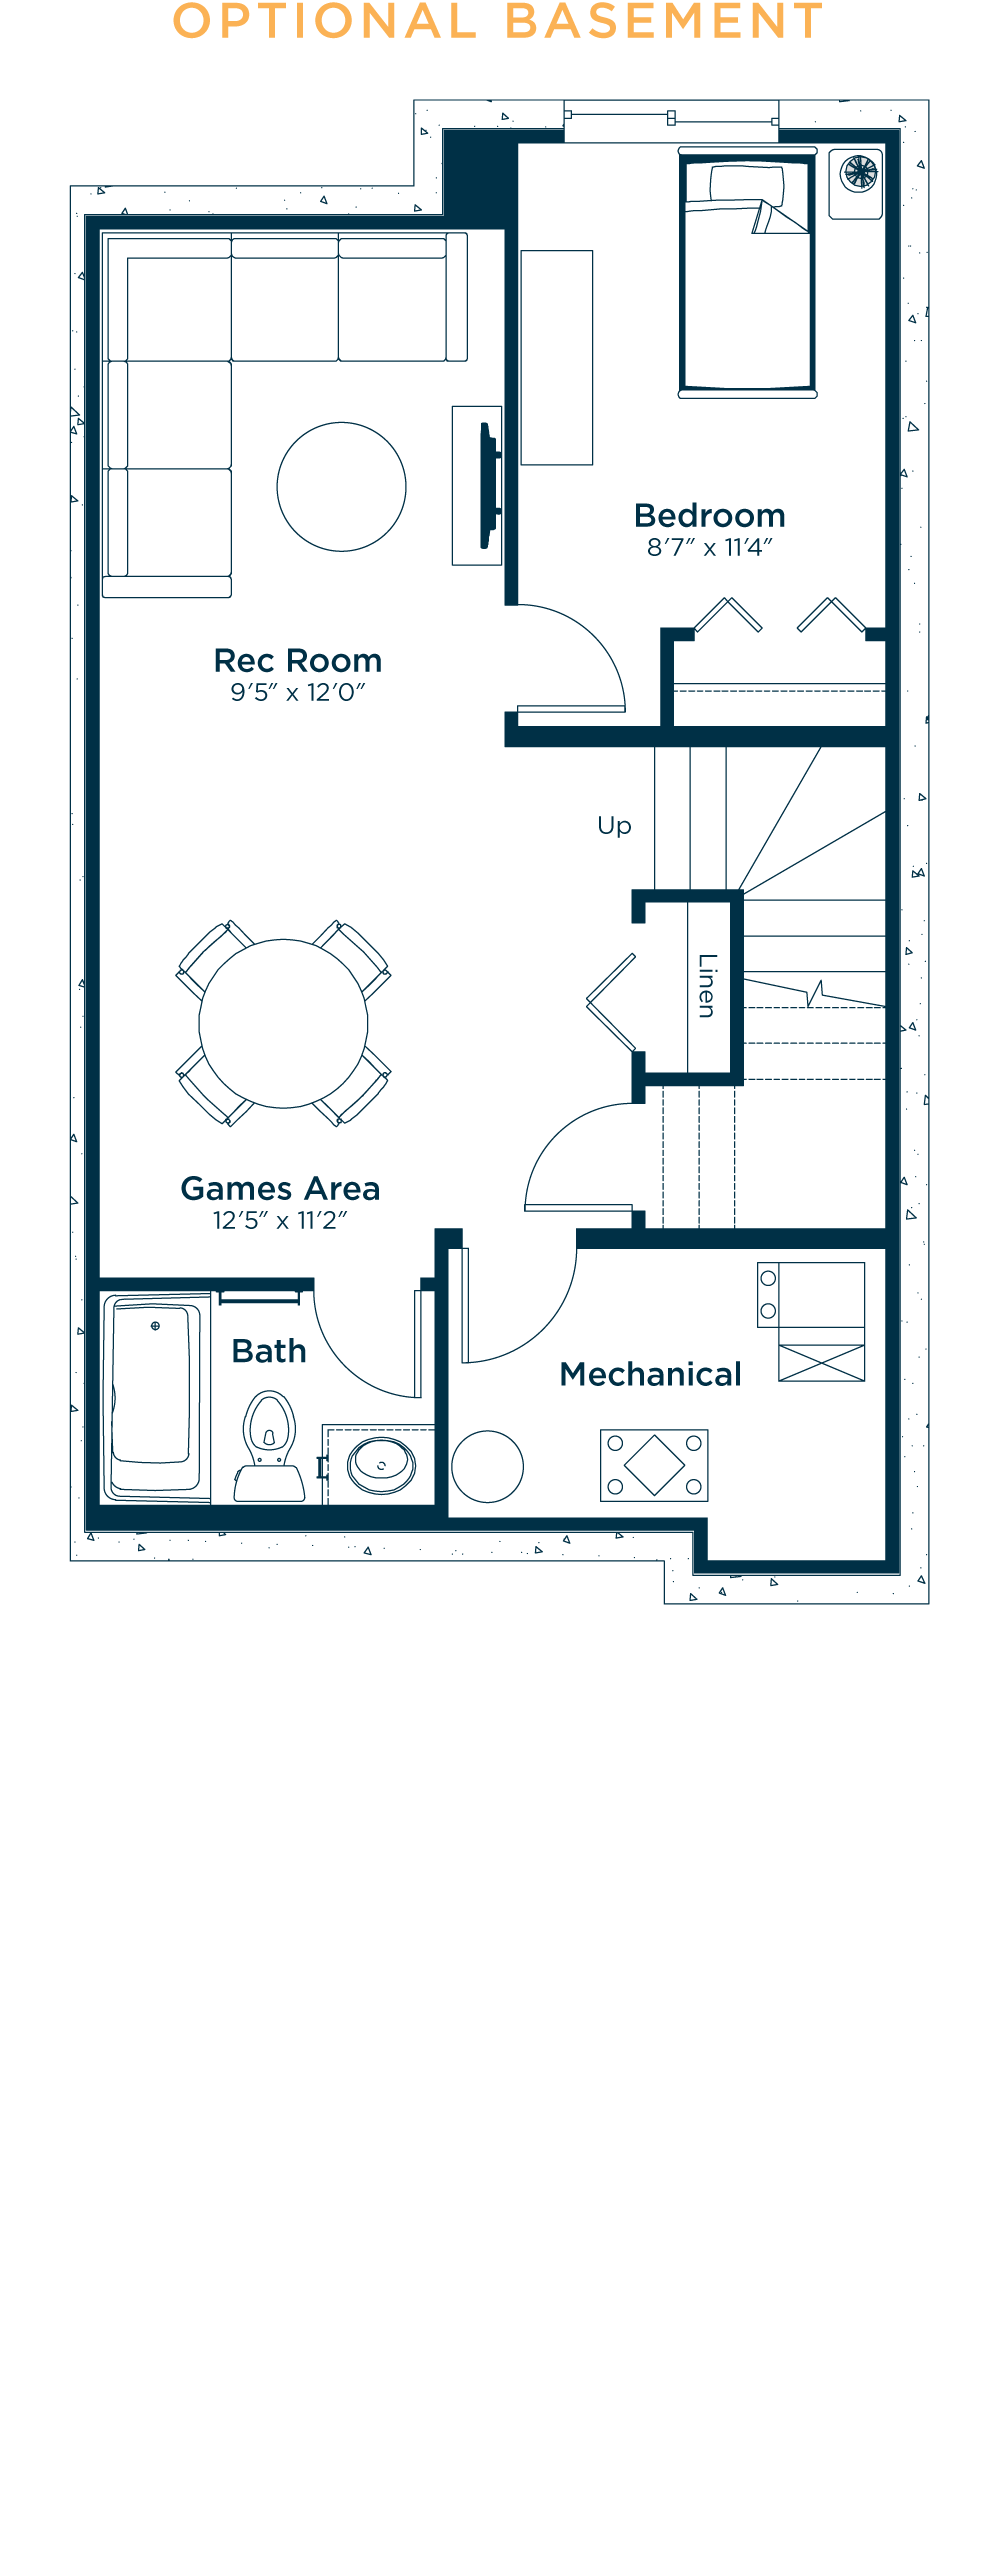 Optional Basement